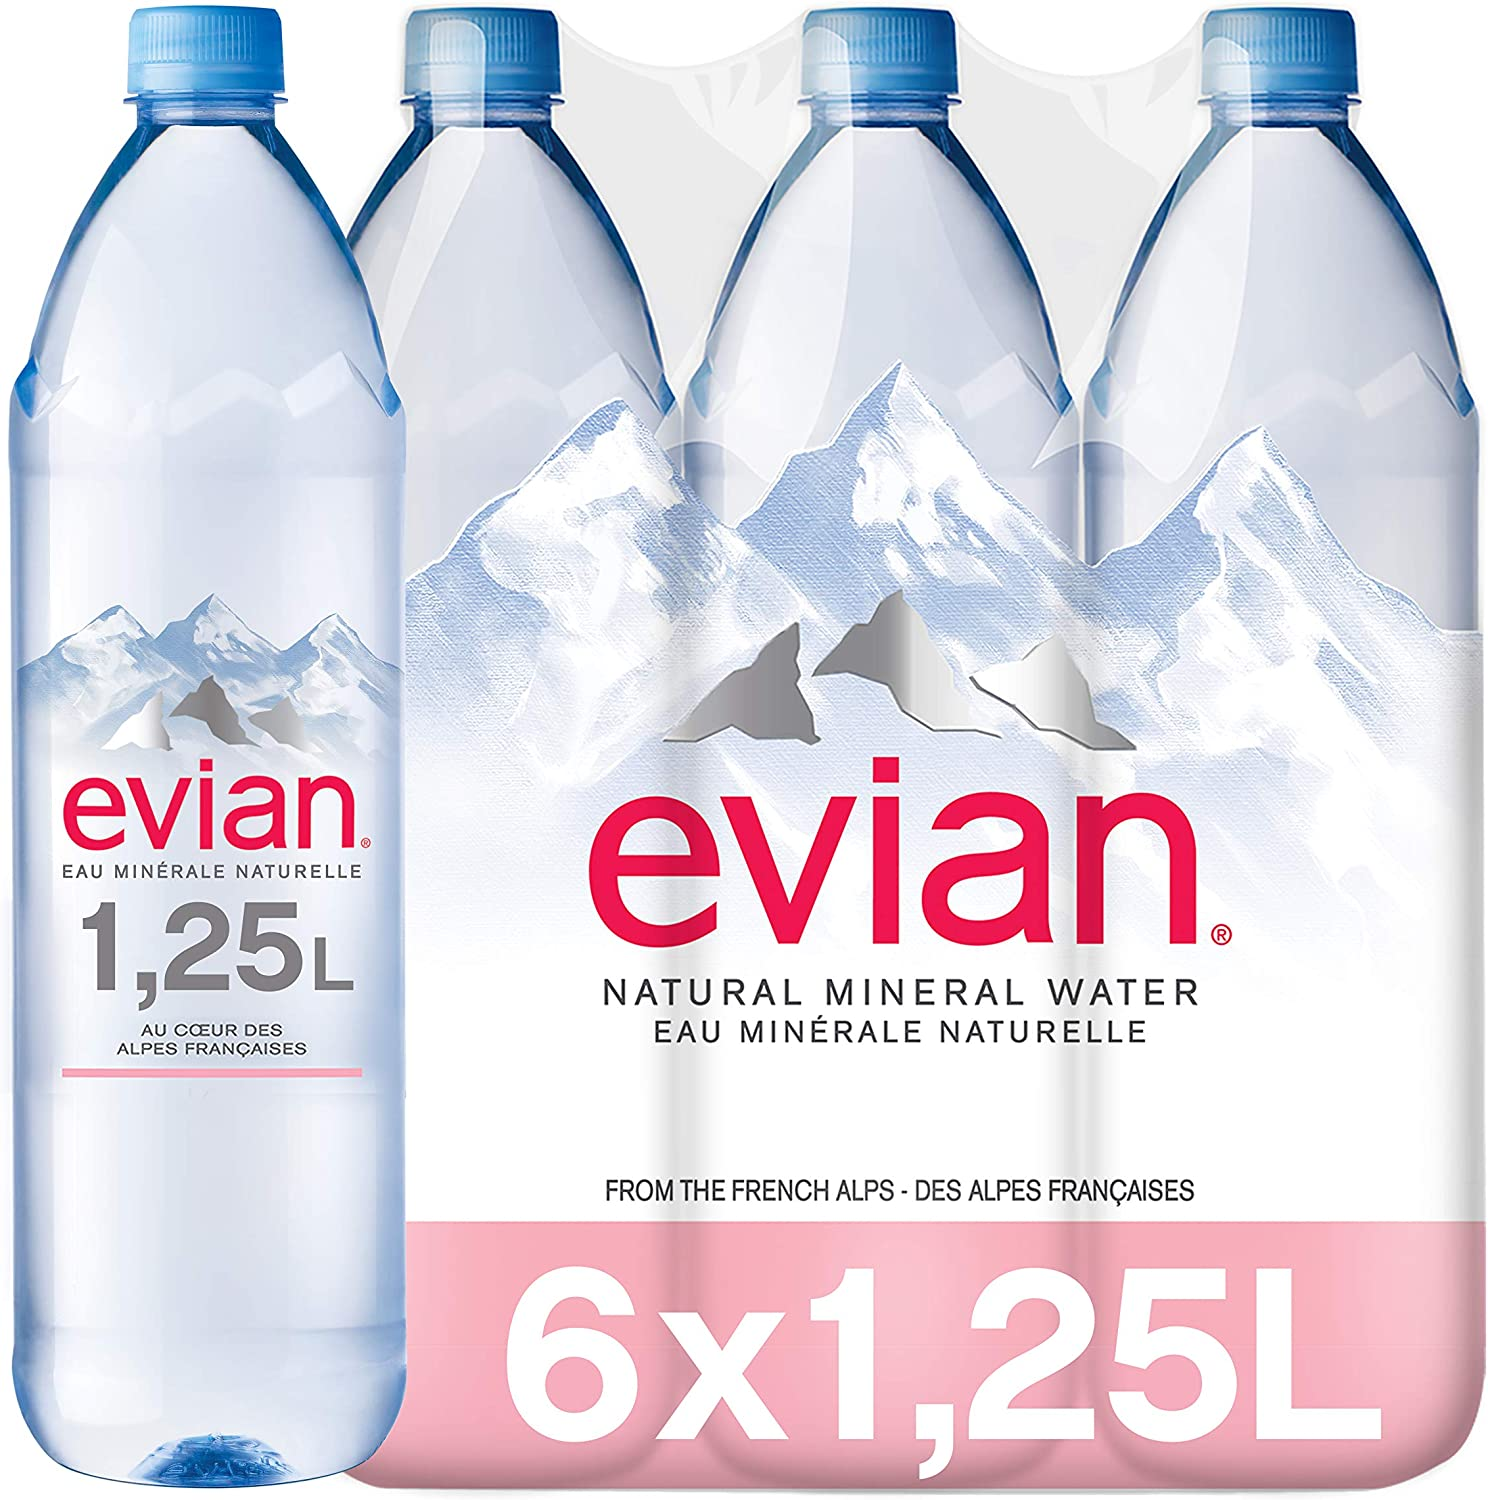 Evian Essence Agua Mineral Natural - Paquete de 6 x 1250 ml - Total: 7500 ml: Amazon.es: Alimentación y bebidas